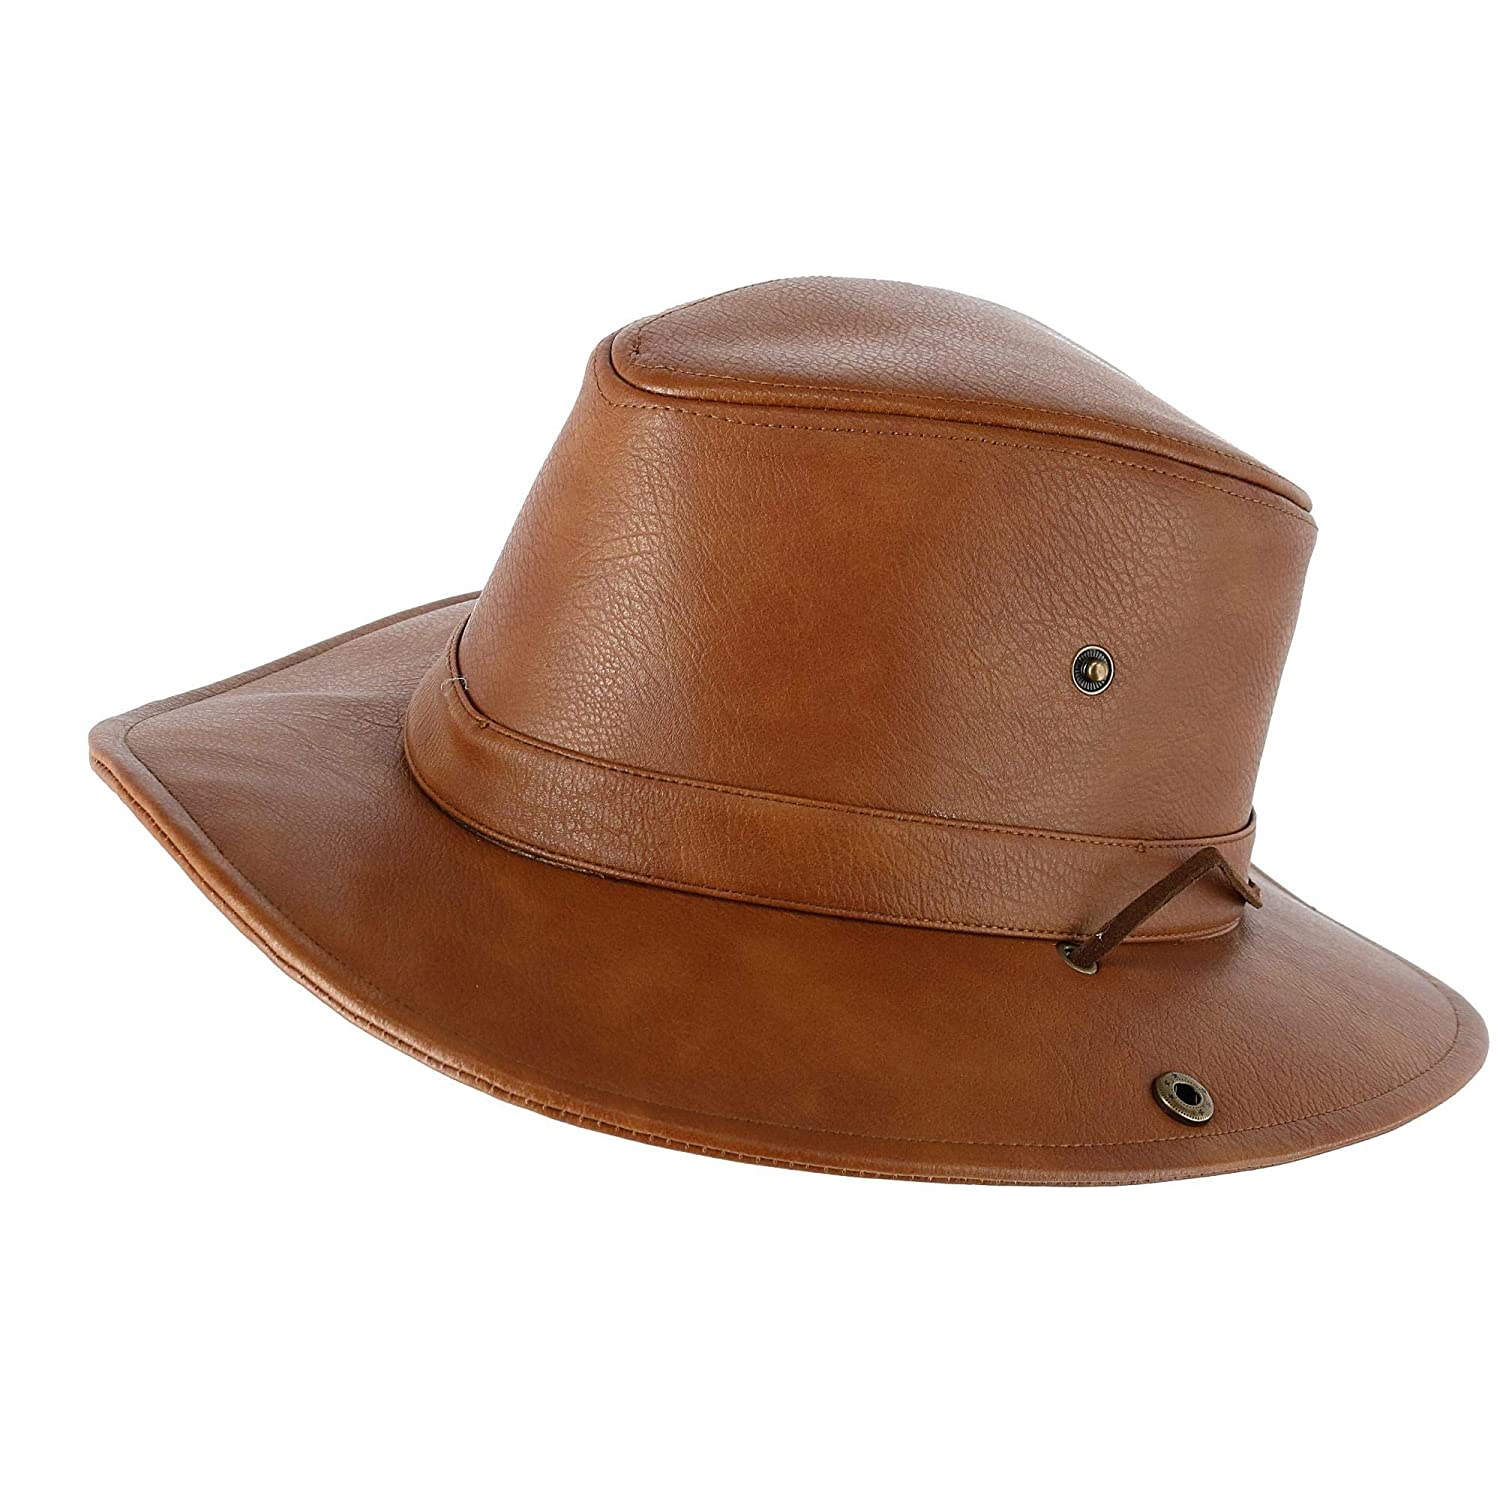 Epoch Hats Company Men's Faux Leather Safari Fedora with Chin Cord Light Brown